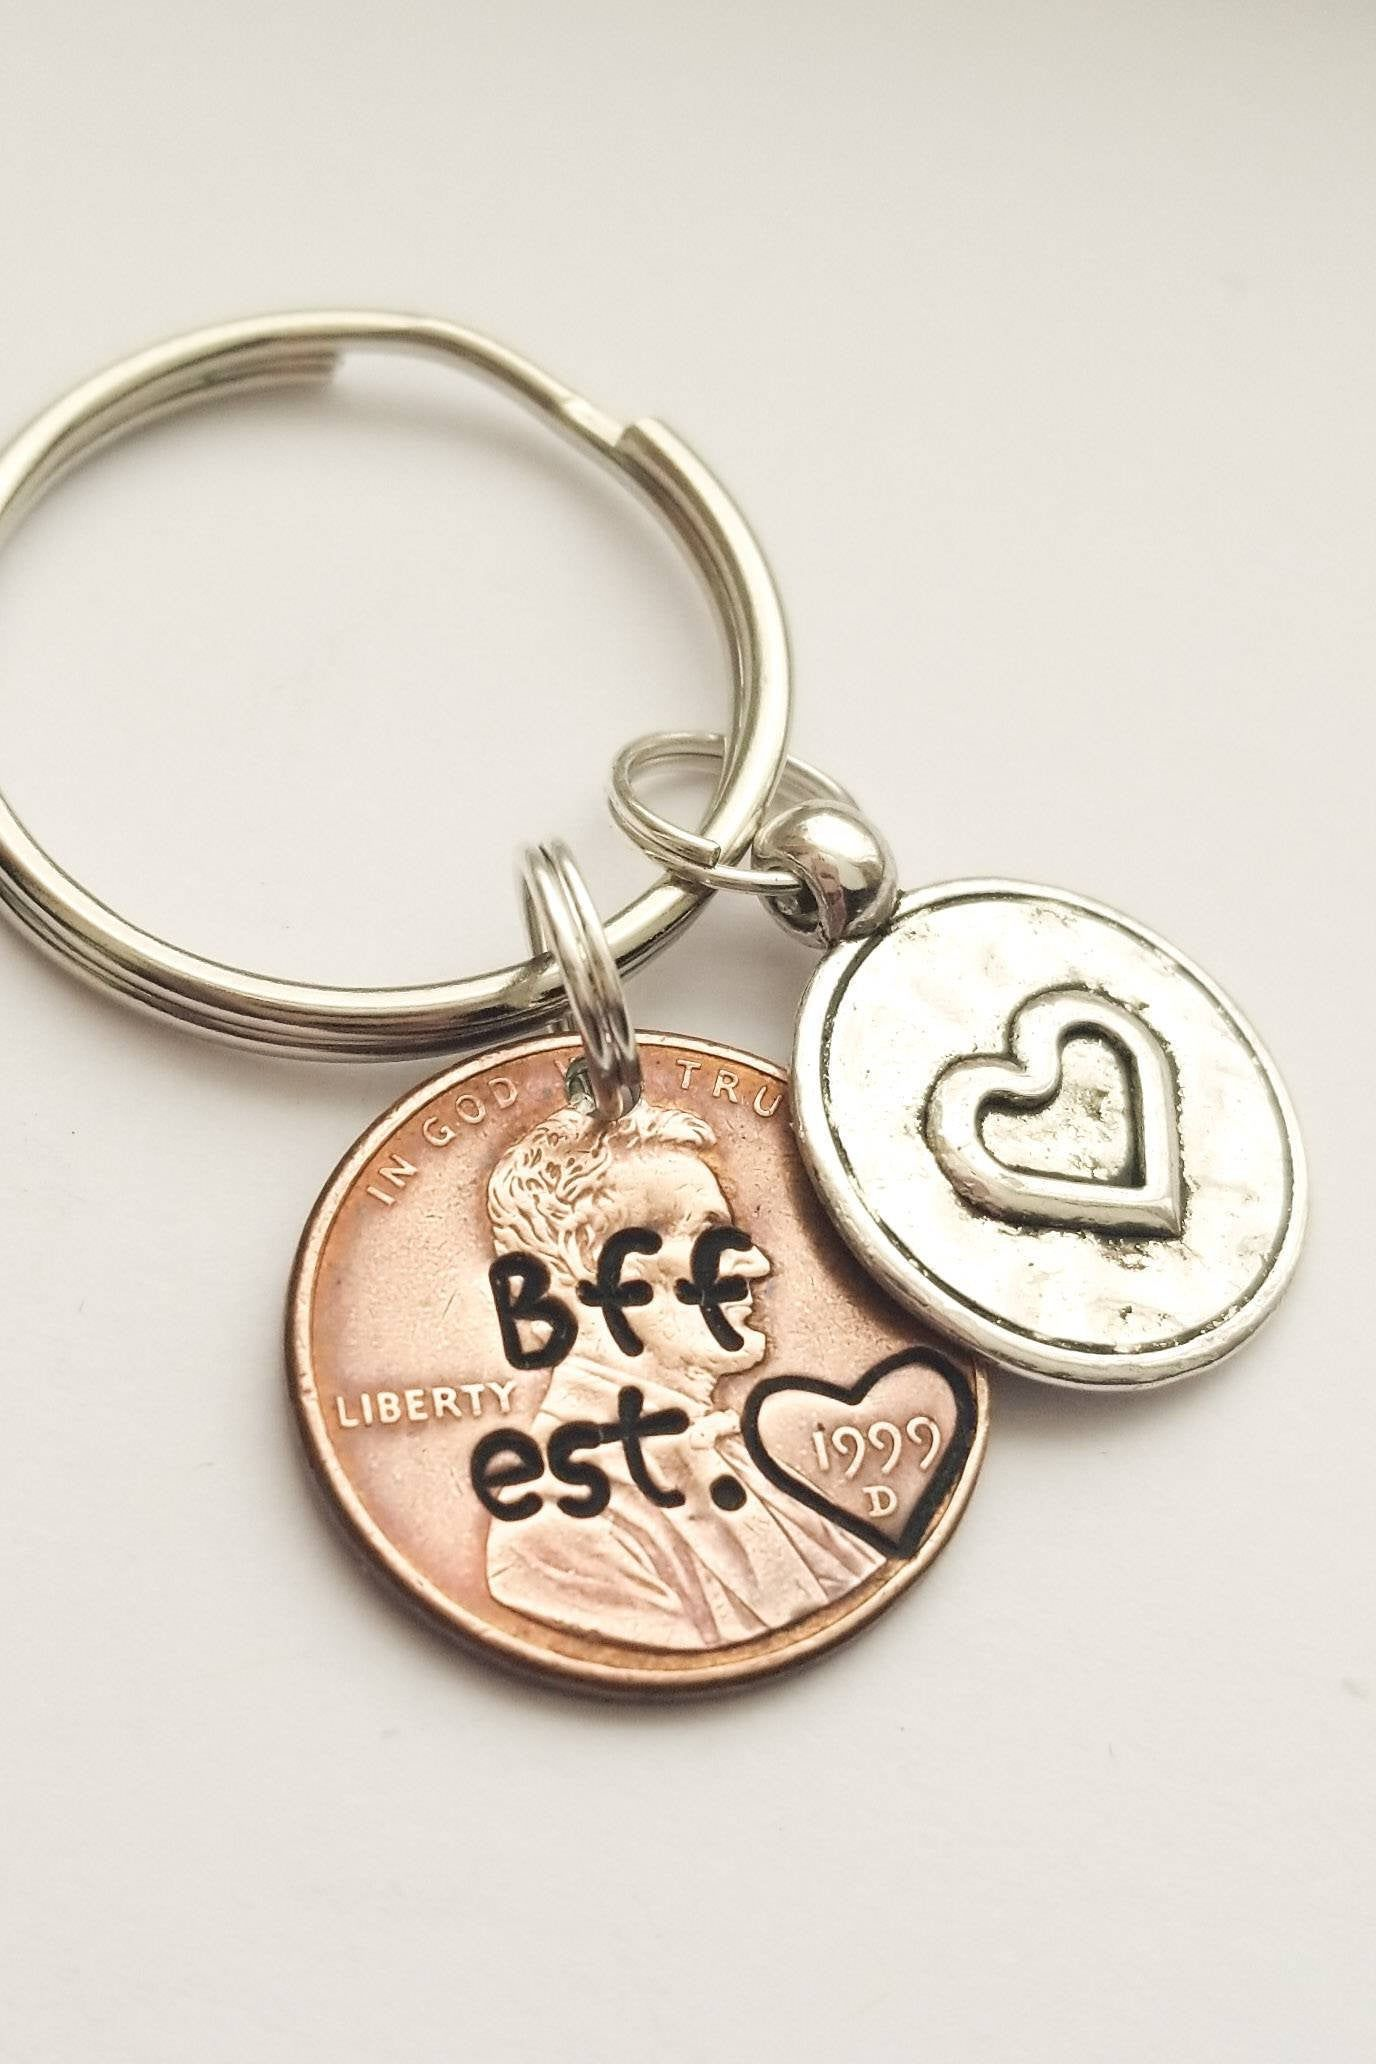 Best Friend Personalized Gifts Uk 2021